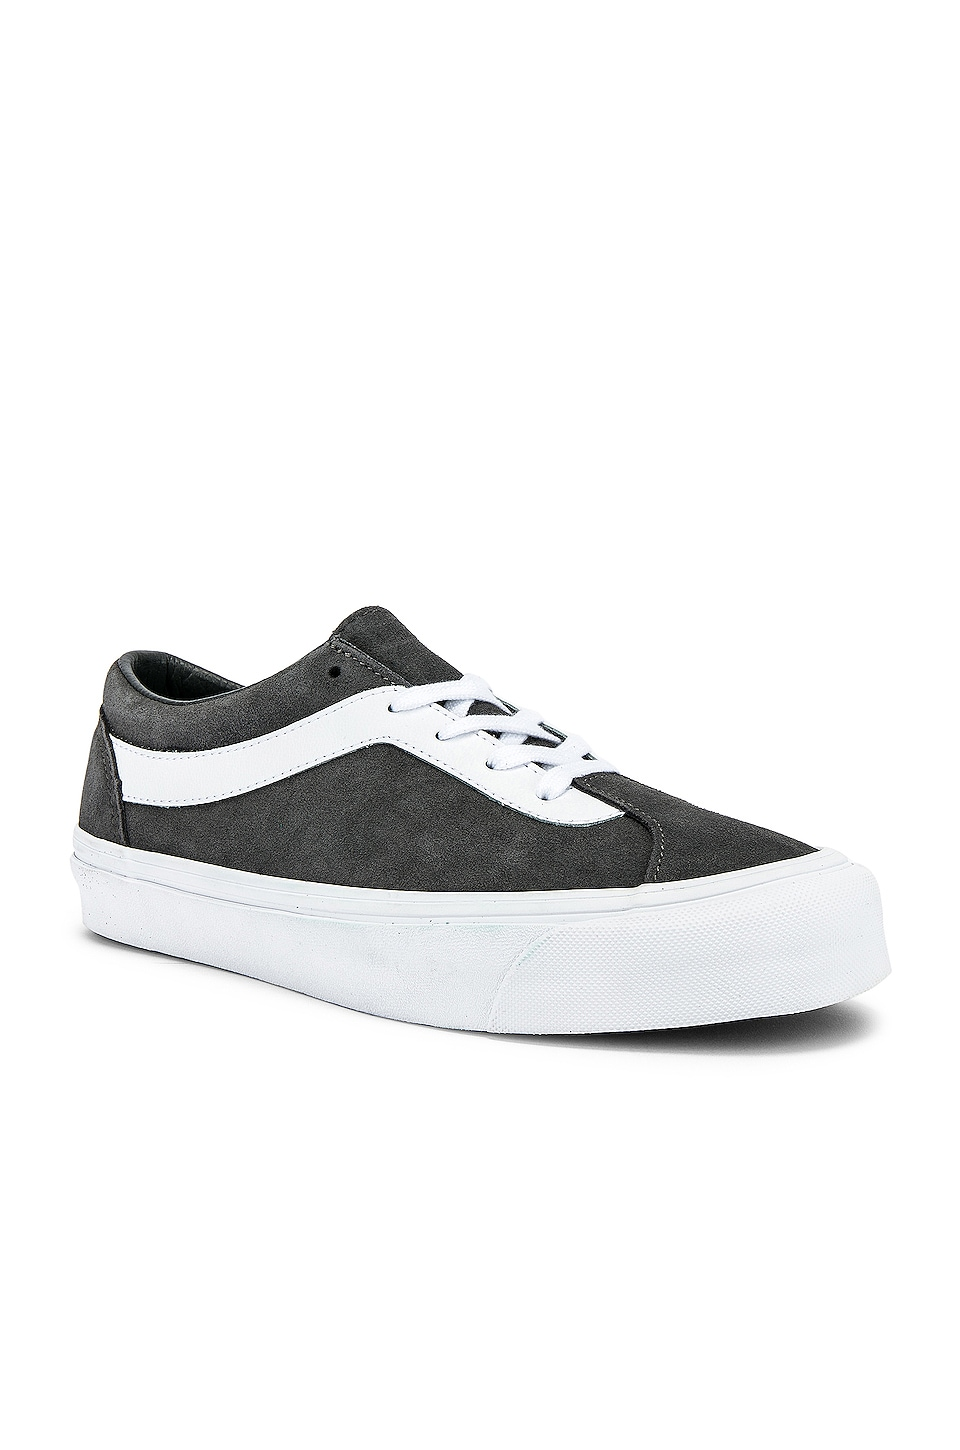 Vans Bold Ni in Pewter & True White